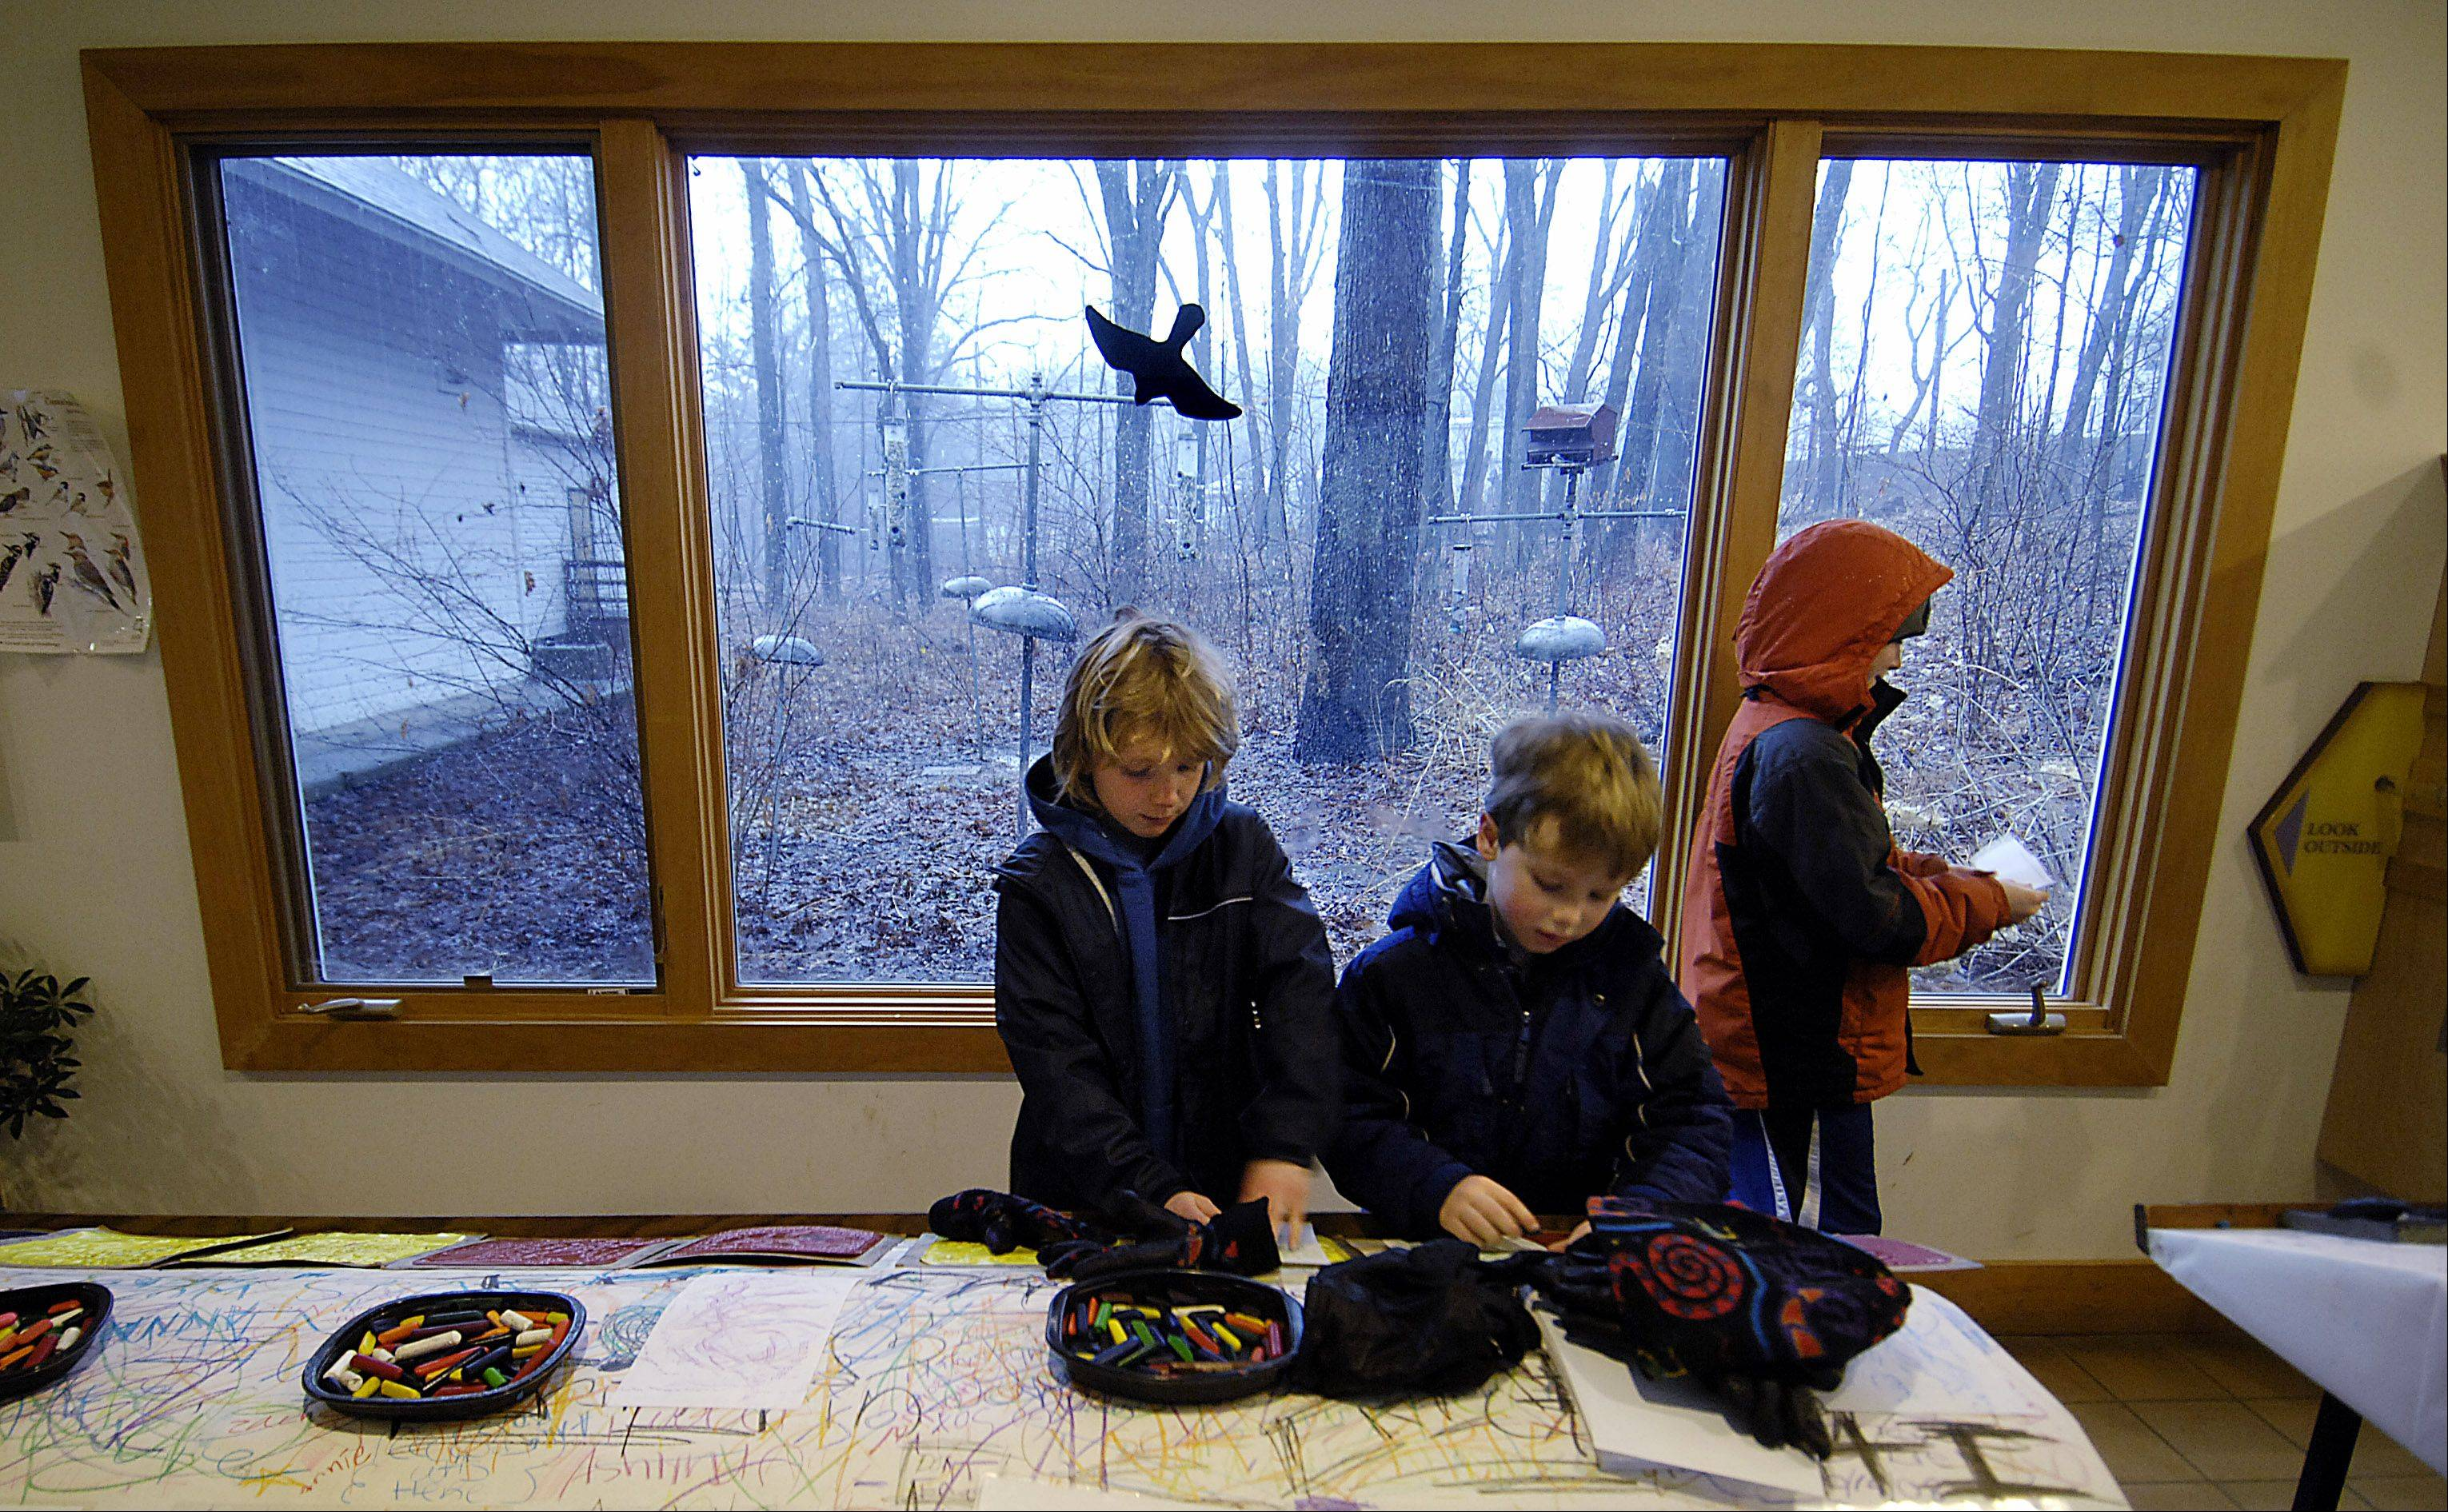 Many children have made nature-themed crafts at the Tekakwitha Woods Nature Center over the years. Shown are, from left, Keaton Jens, 8; Matthew Clancy, 6; and Peter Clancy, 10, all of St. Charles, during the annual Maple Sugaring Festival.